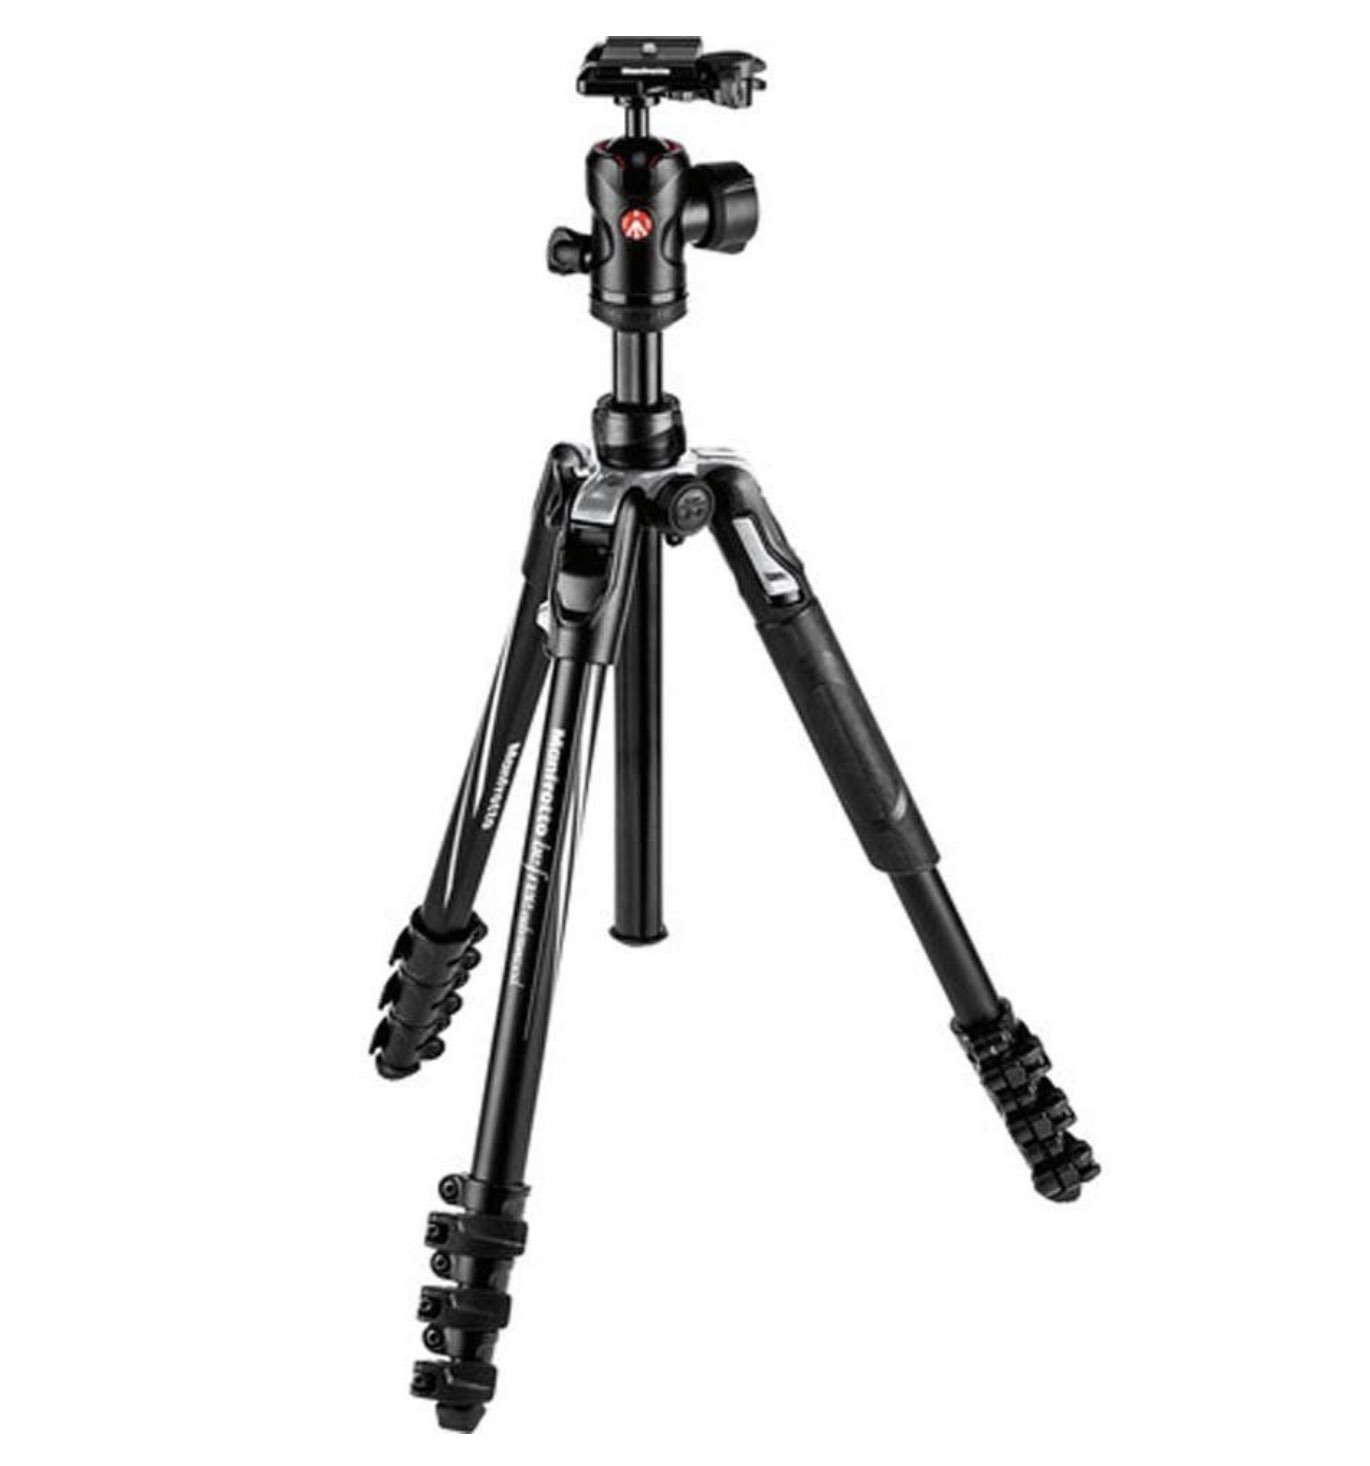 Manfrotto Travel Tripod - Best Gifts for Photographers